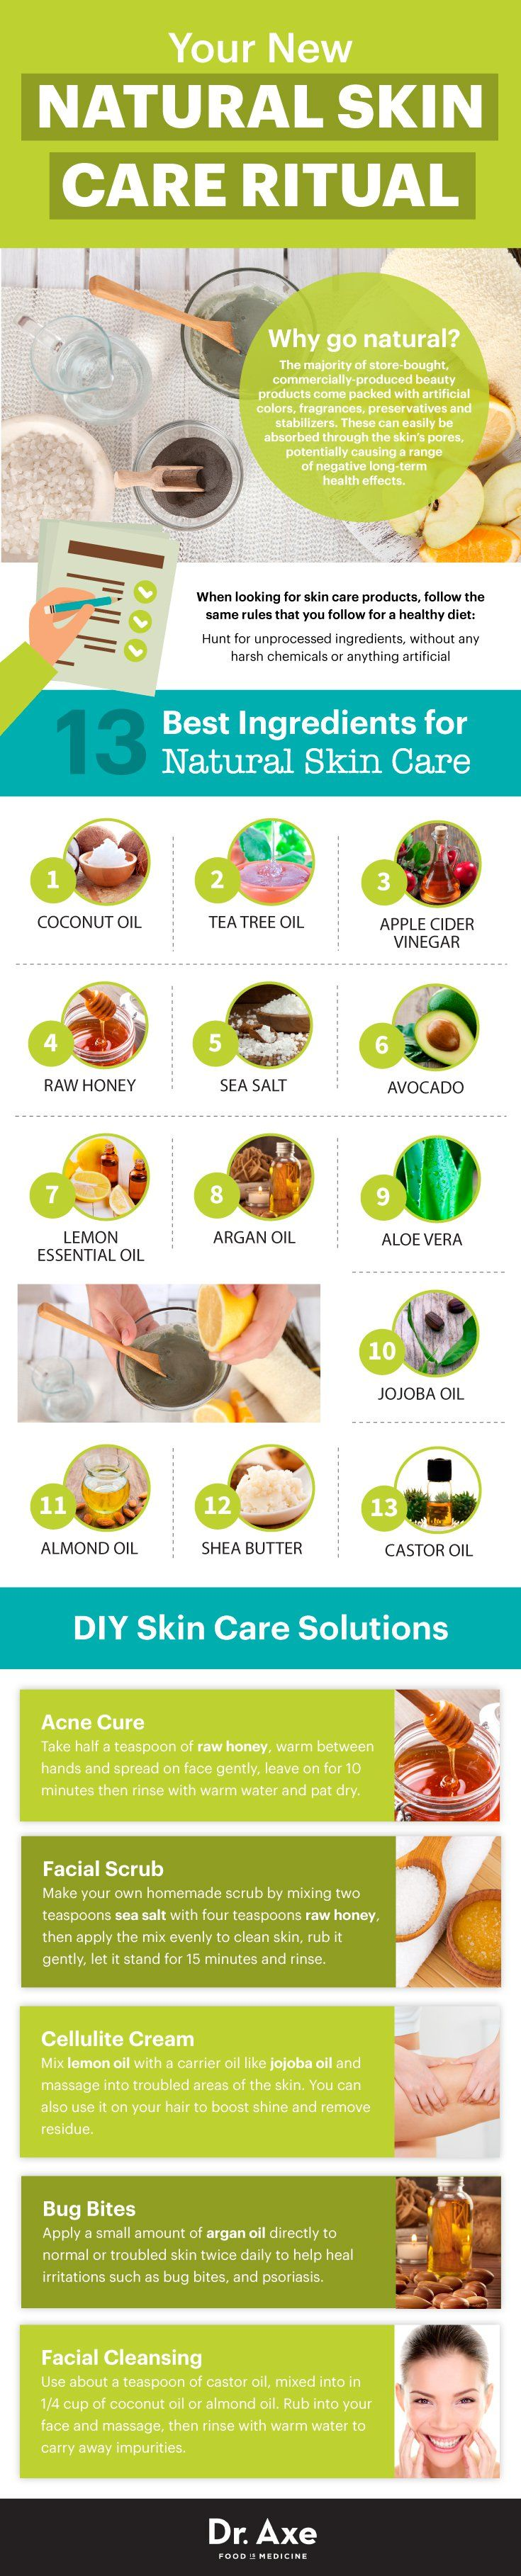 Natural Skin Care Ritual The 13 Best Ingredients Dr Axe Skin Care Guide Natural Skin Care Skin Care Solutions